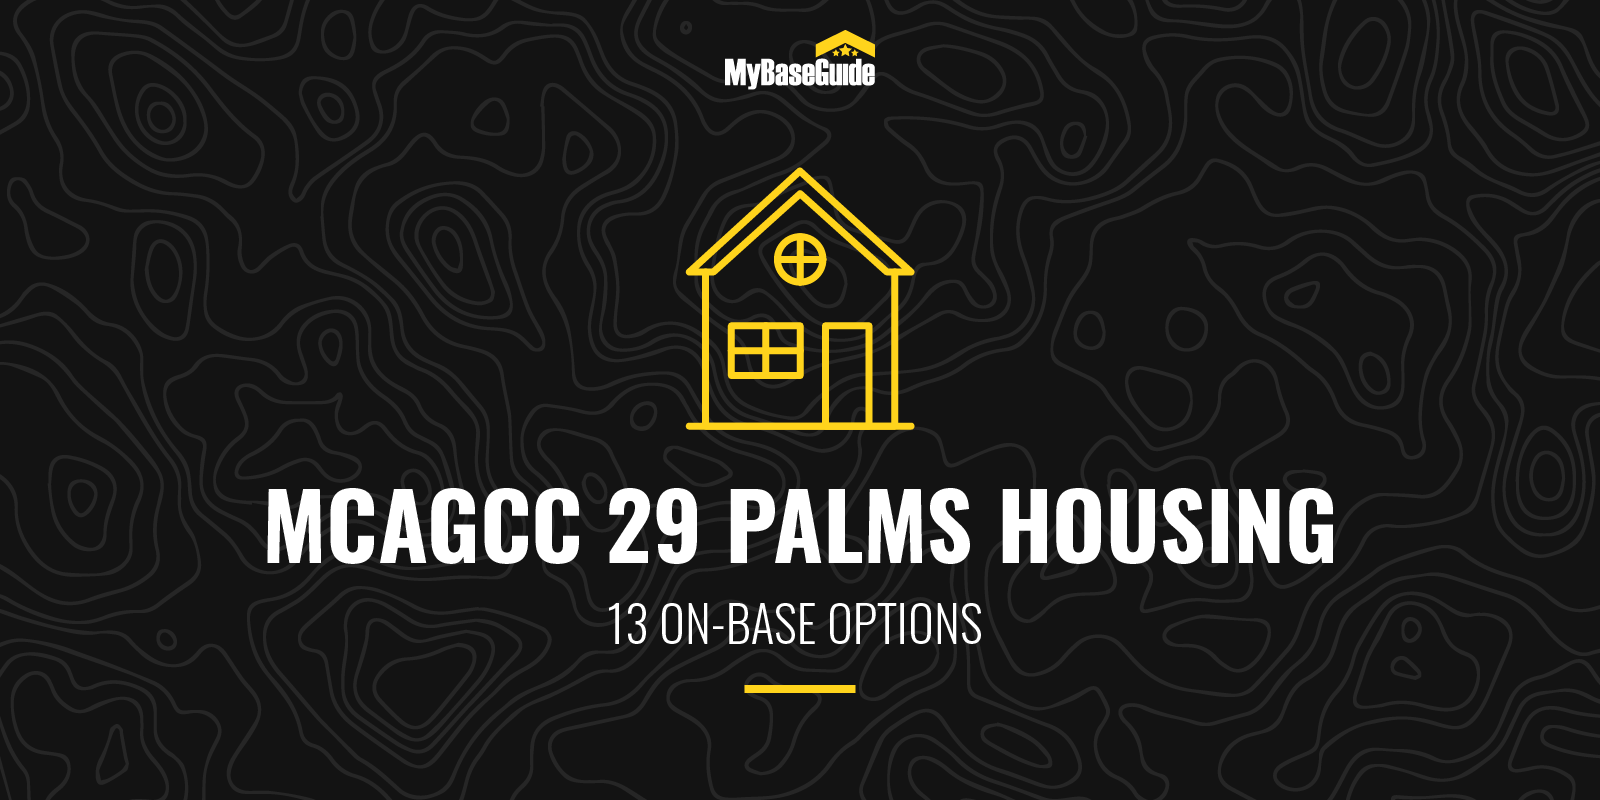 MCAGCC 29 Palms Housing: 13 On Base Options